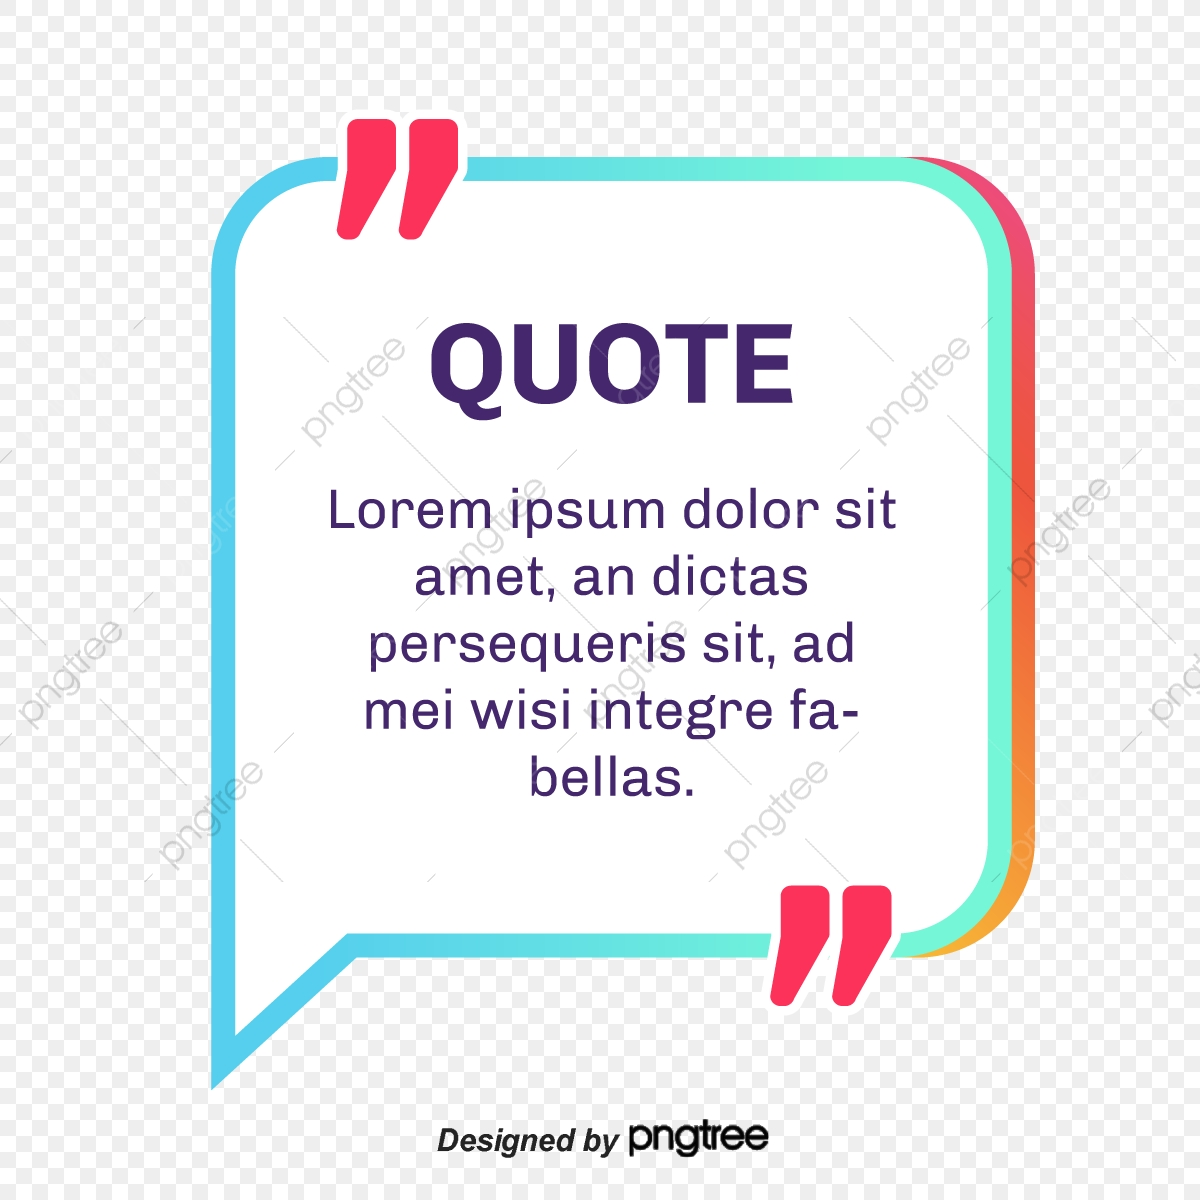 Quotes Png, Vector, PSD, and Clipart With Transparent Background